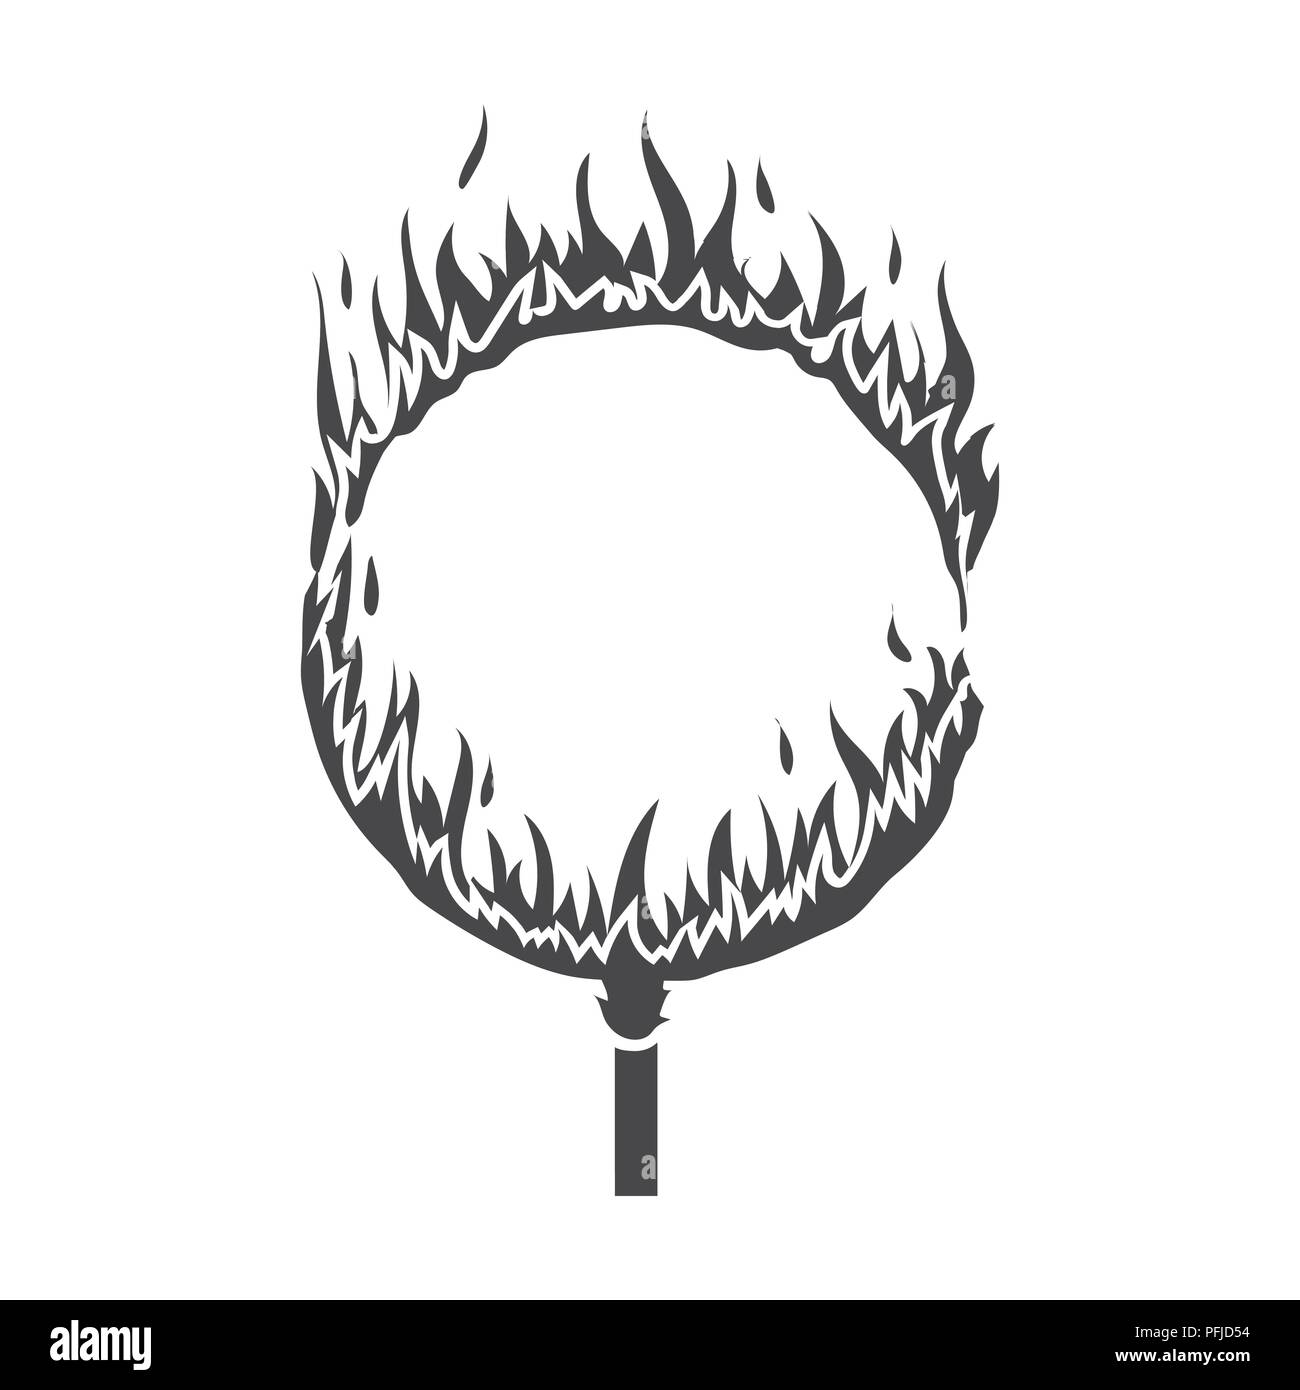 Burning hoop icon in black style isolated on white background. Circus symbol vector illustration. - Stock Image